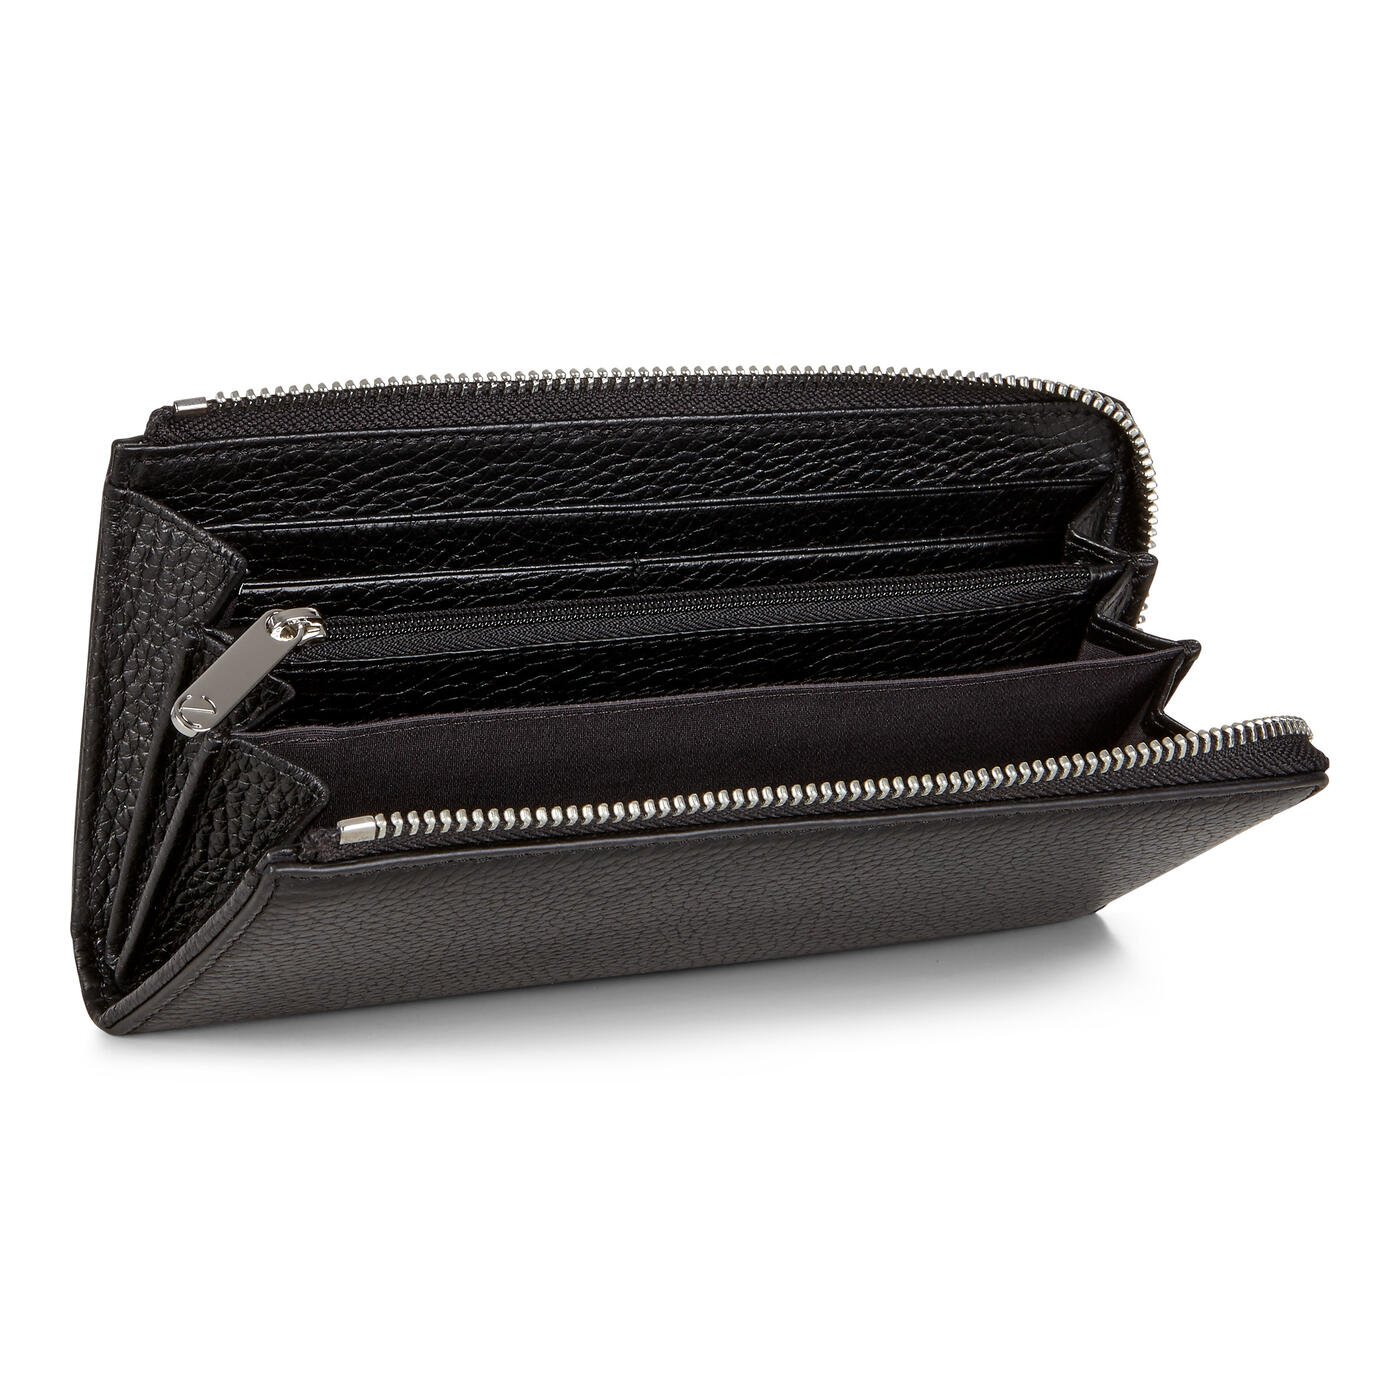 ECCO SP3 Zip Around Wallet